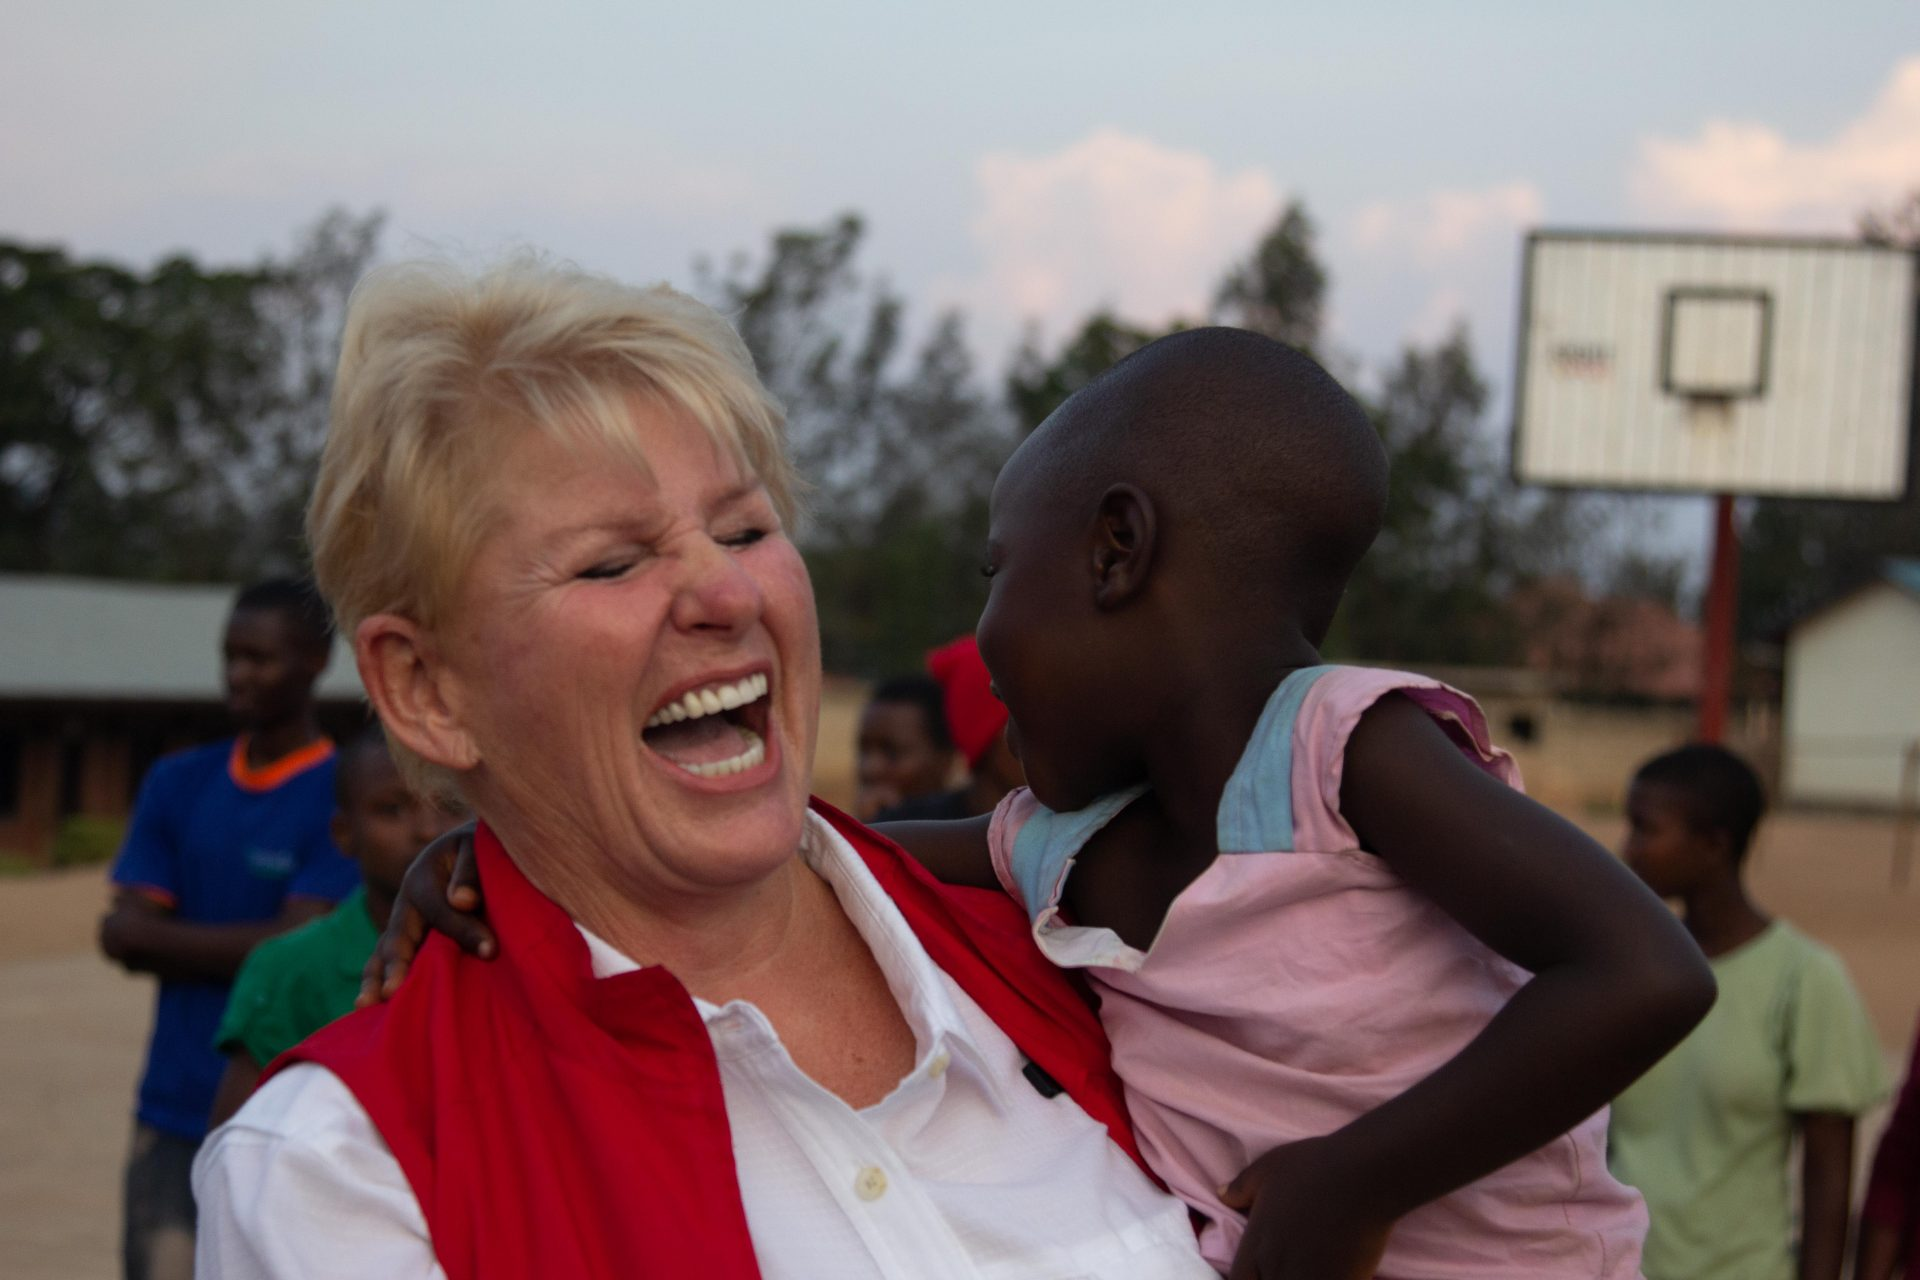 Doing charity work in Kigali, Rwanda with orphans.  We brought books, toys, clothes and danced with the kids.  Sandi had an absolute ball.